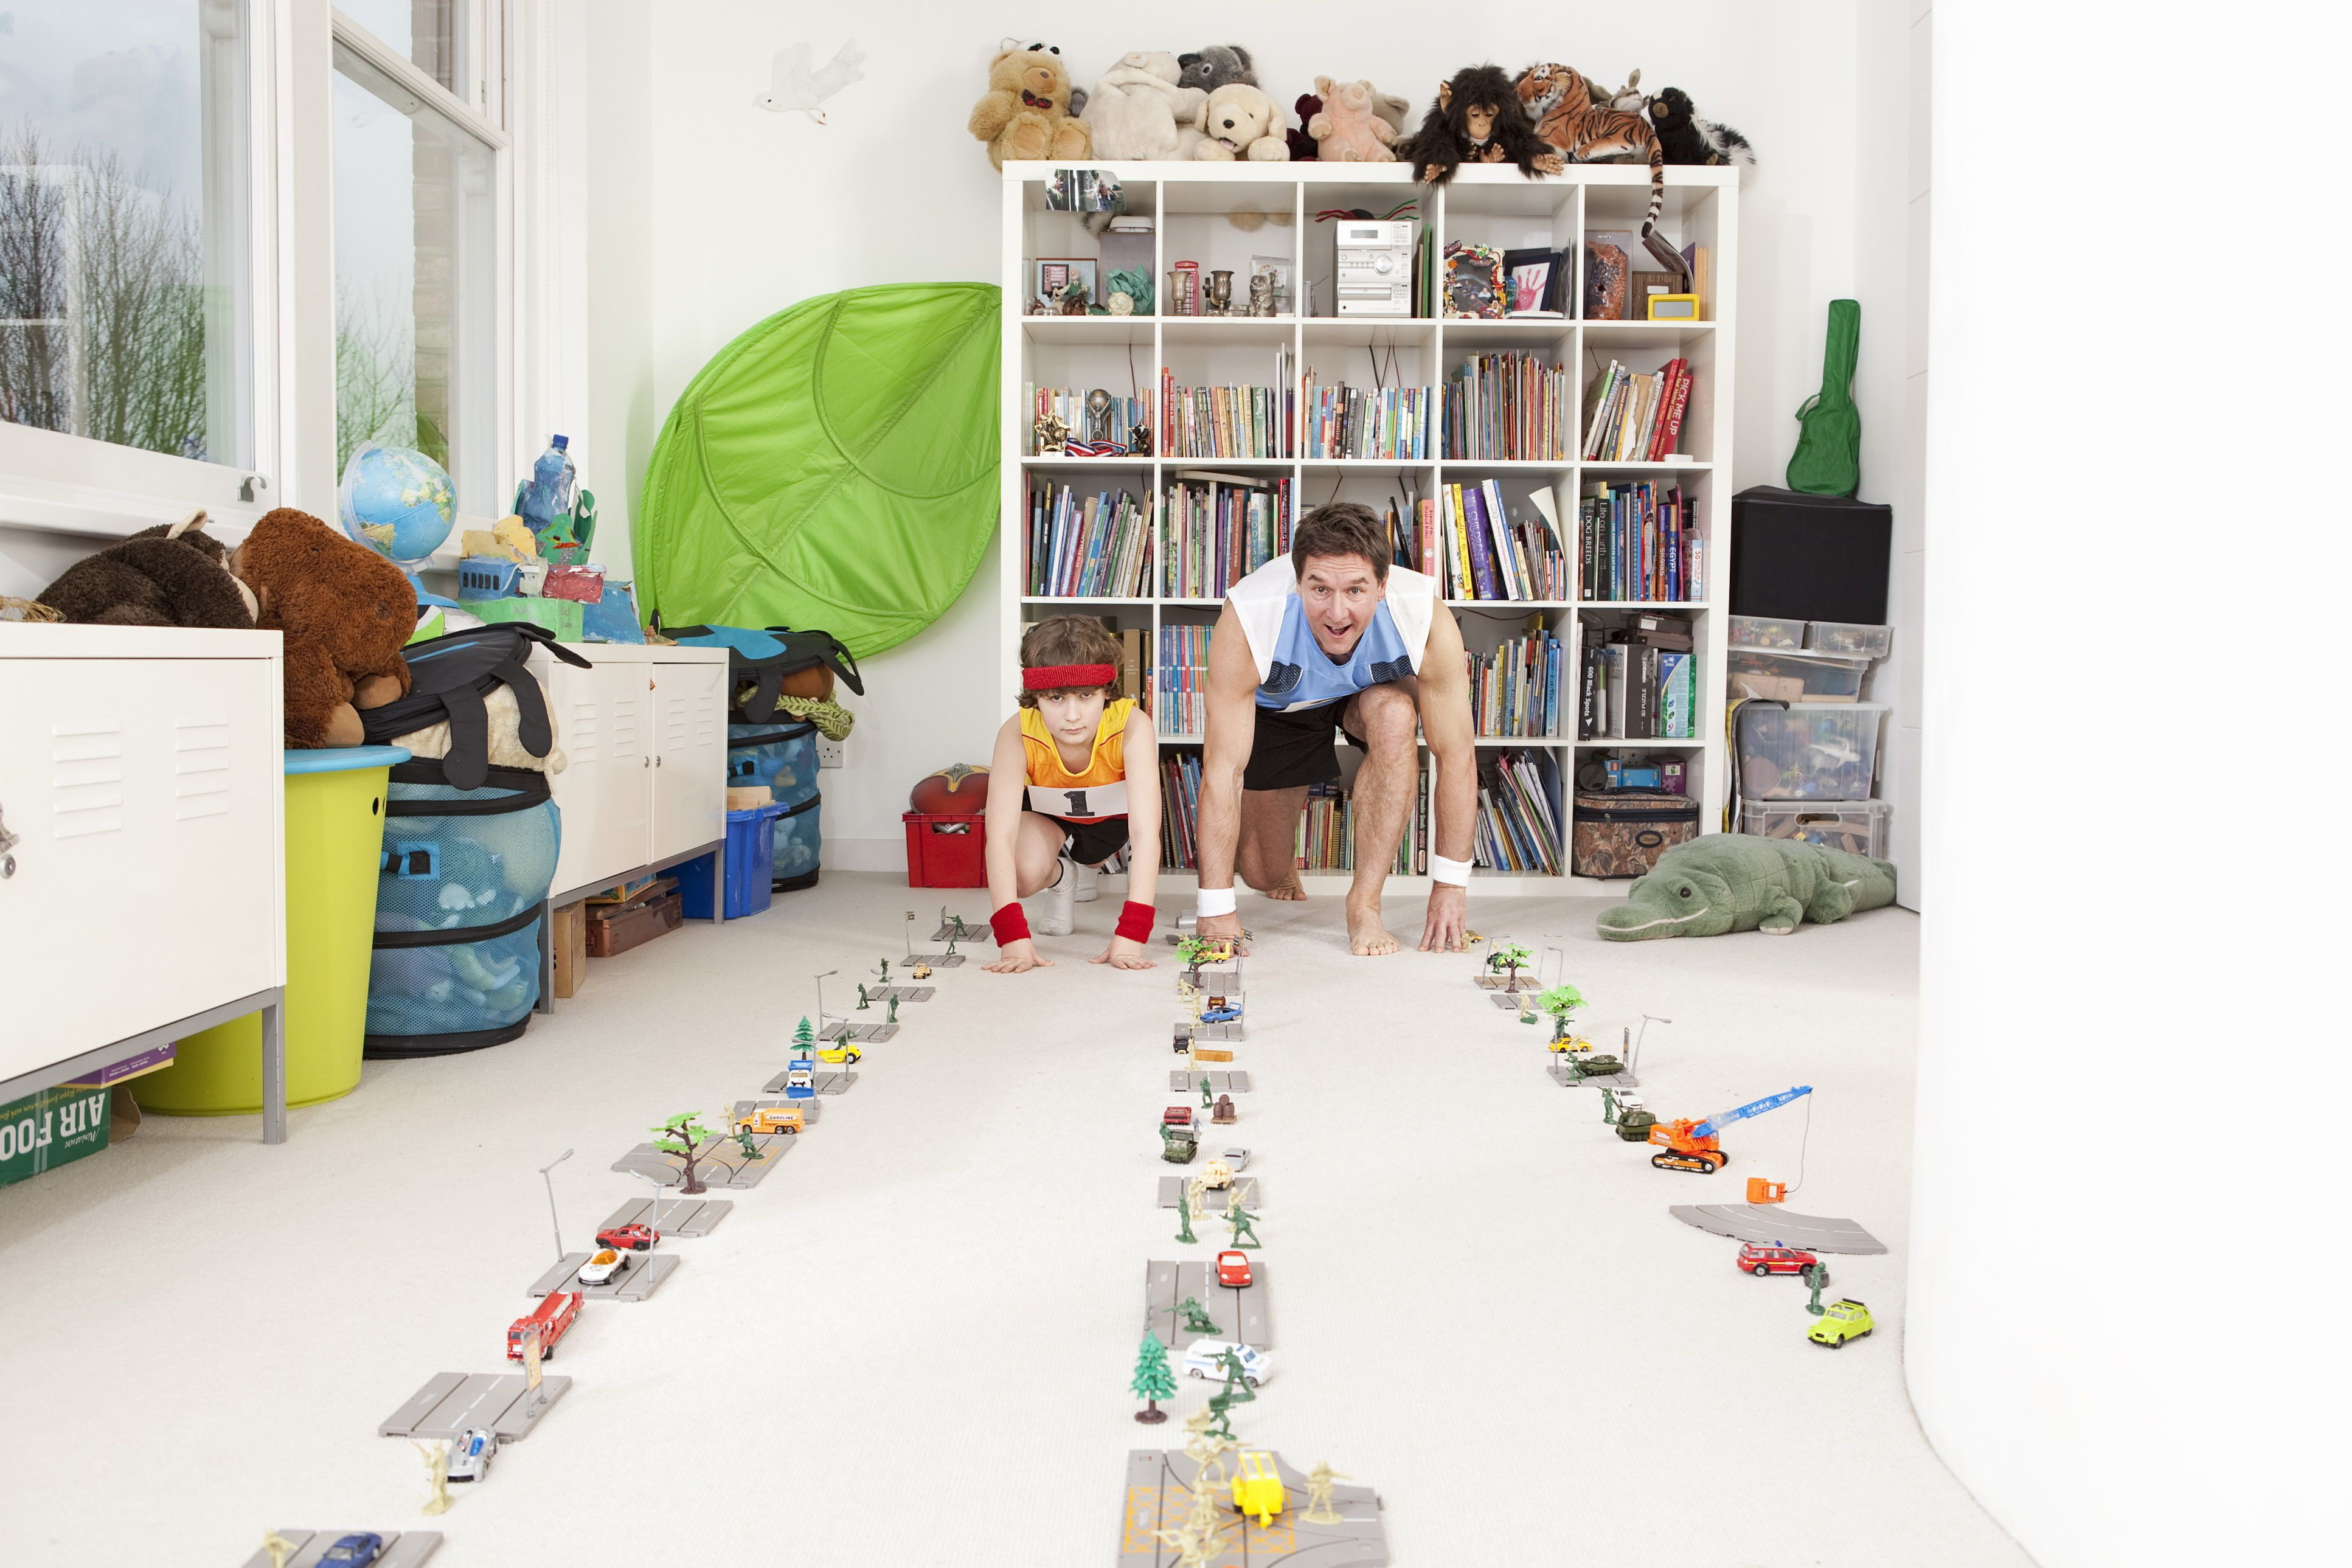 pretend play - father and son indoor Olympics with toy cars